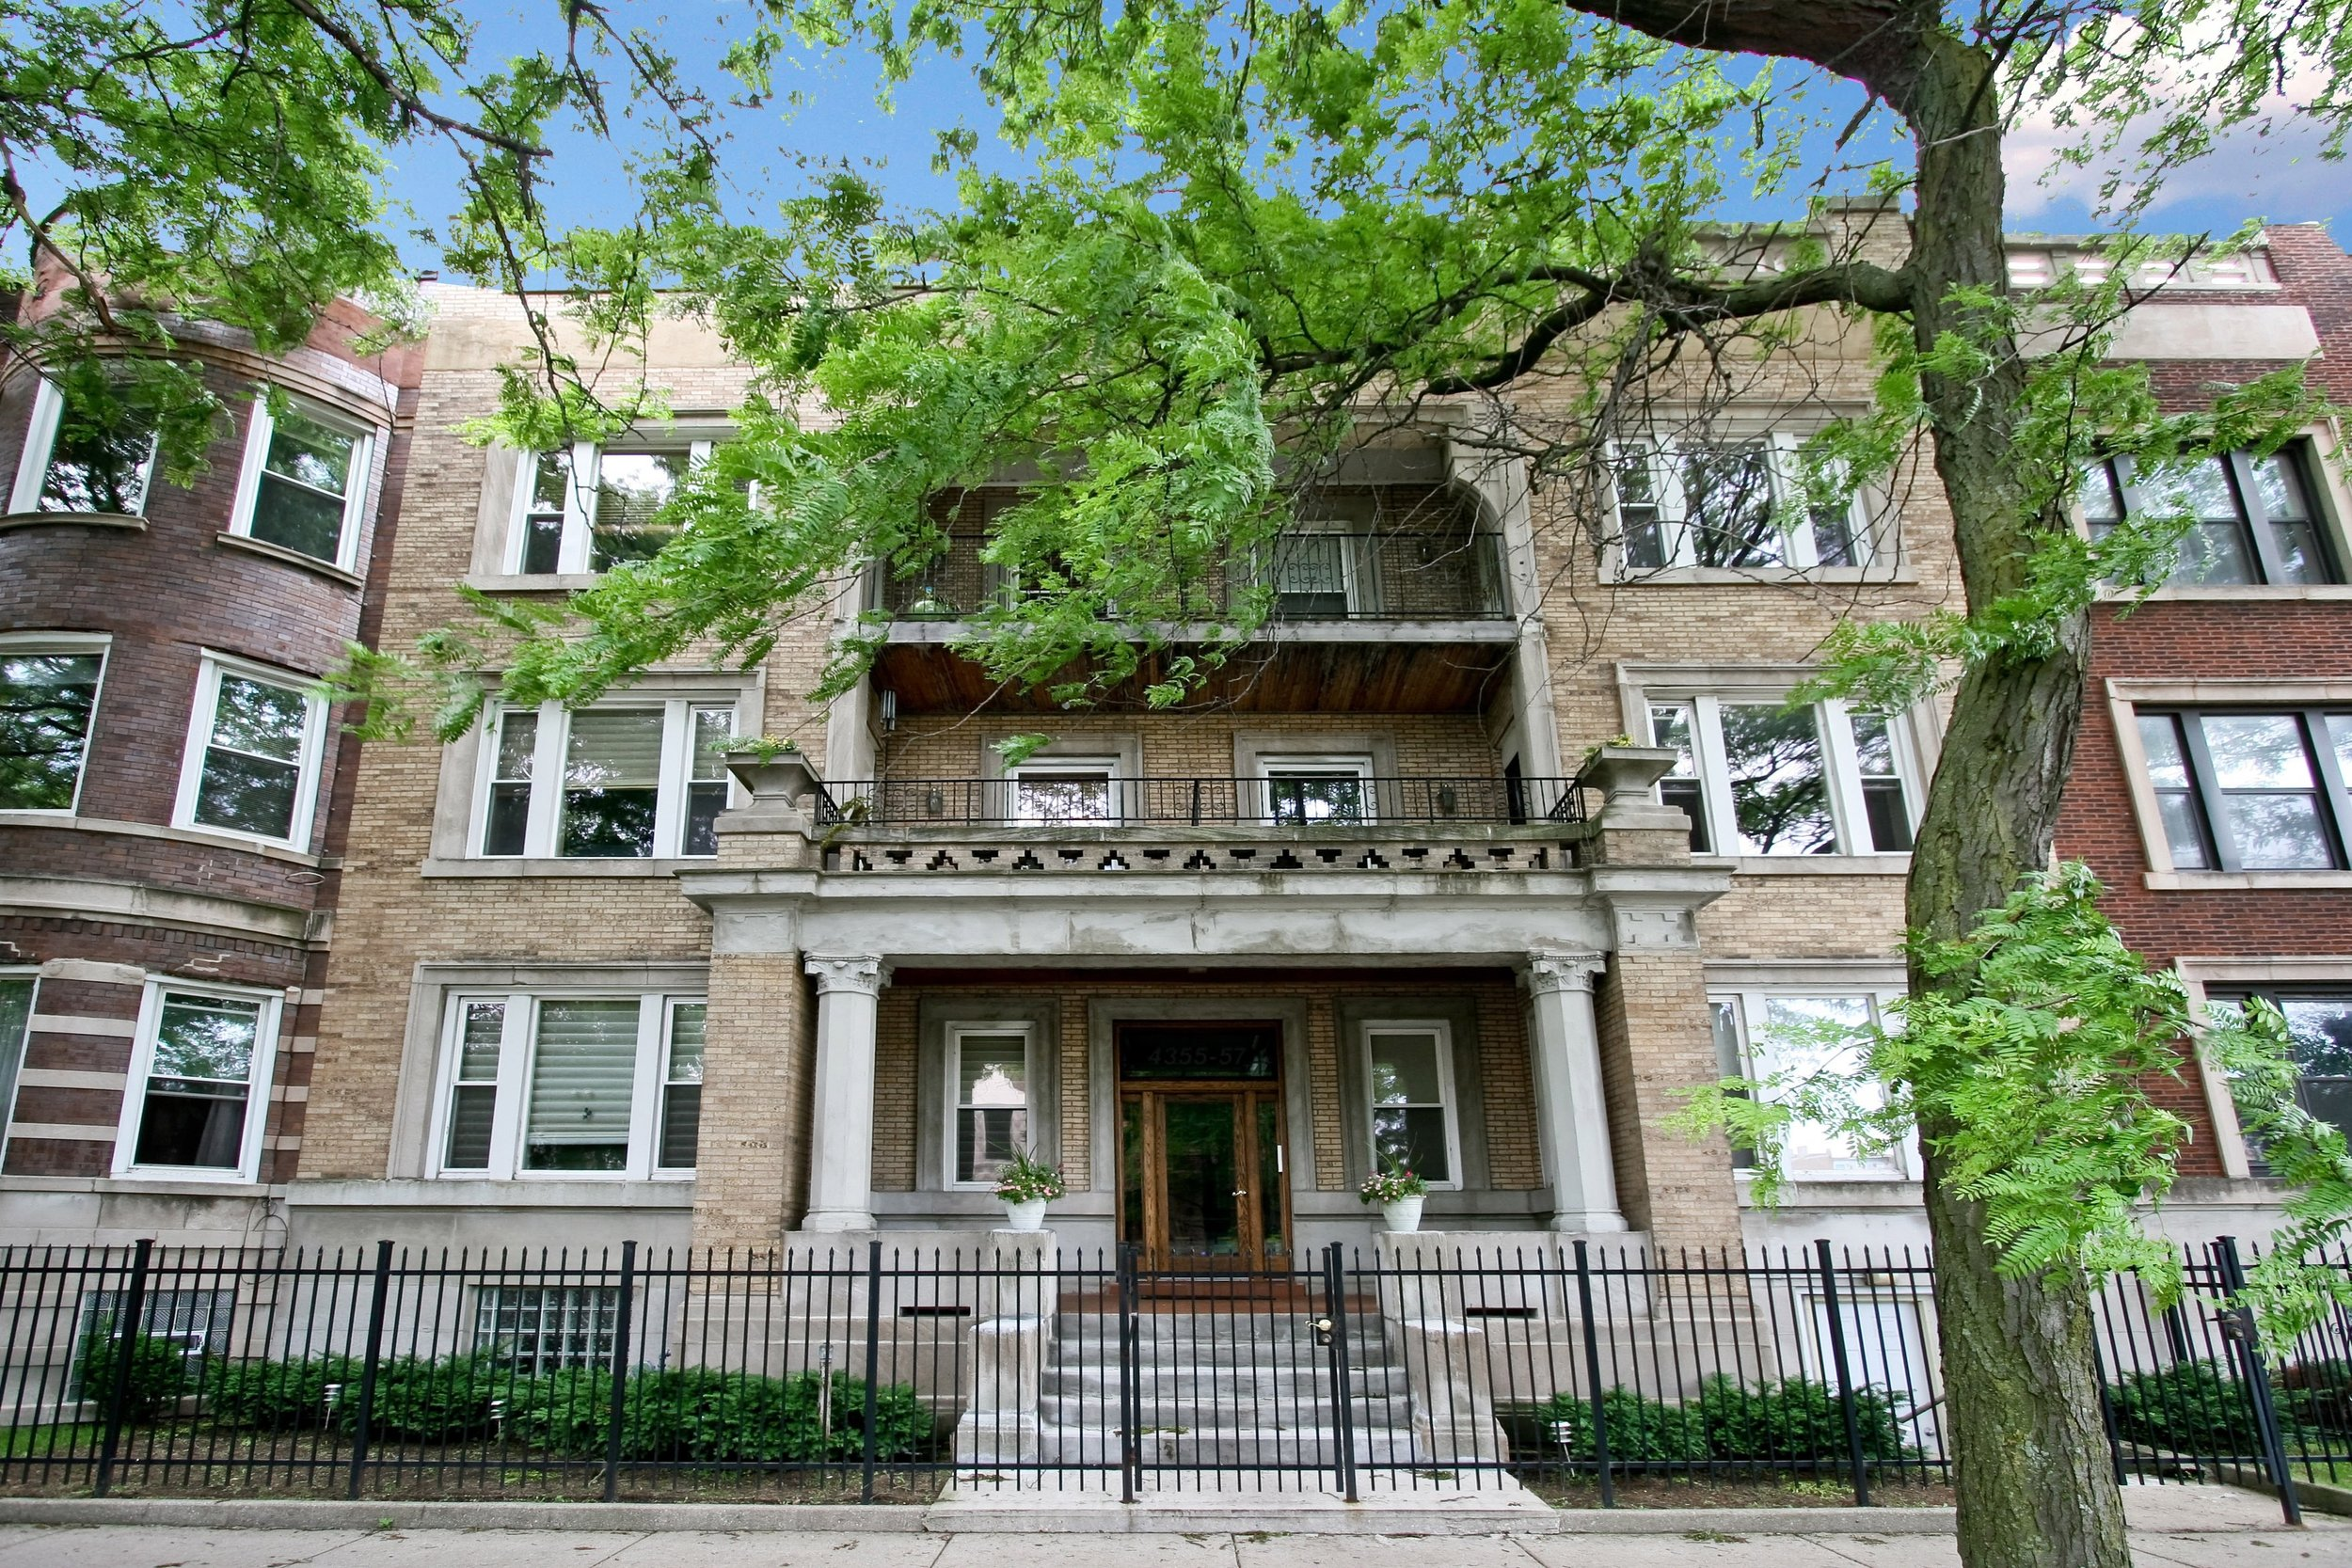 4357 South Greenwood Avenue Unit 1S - $310,000 (SOLD)